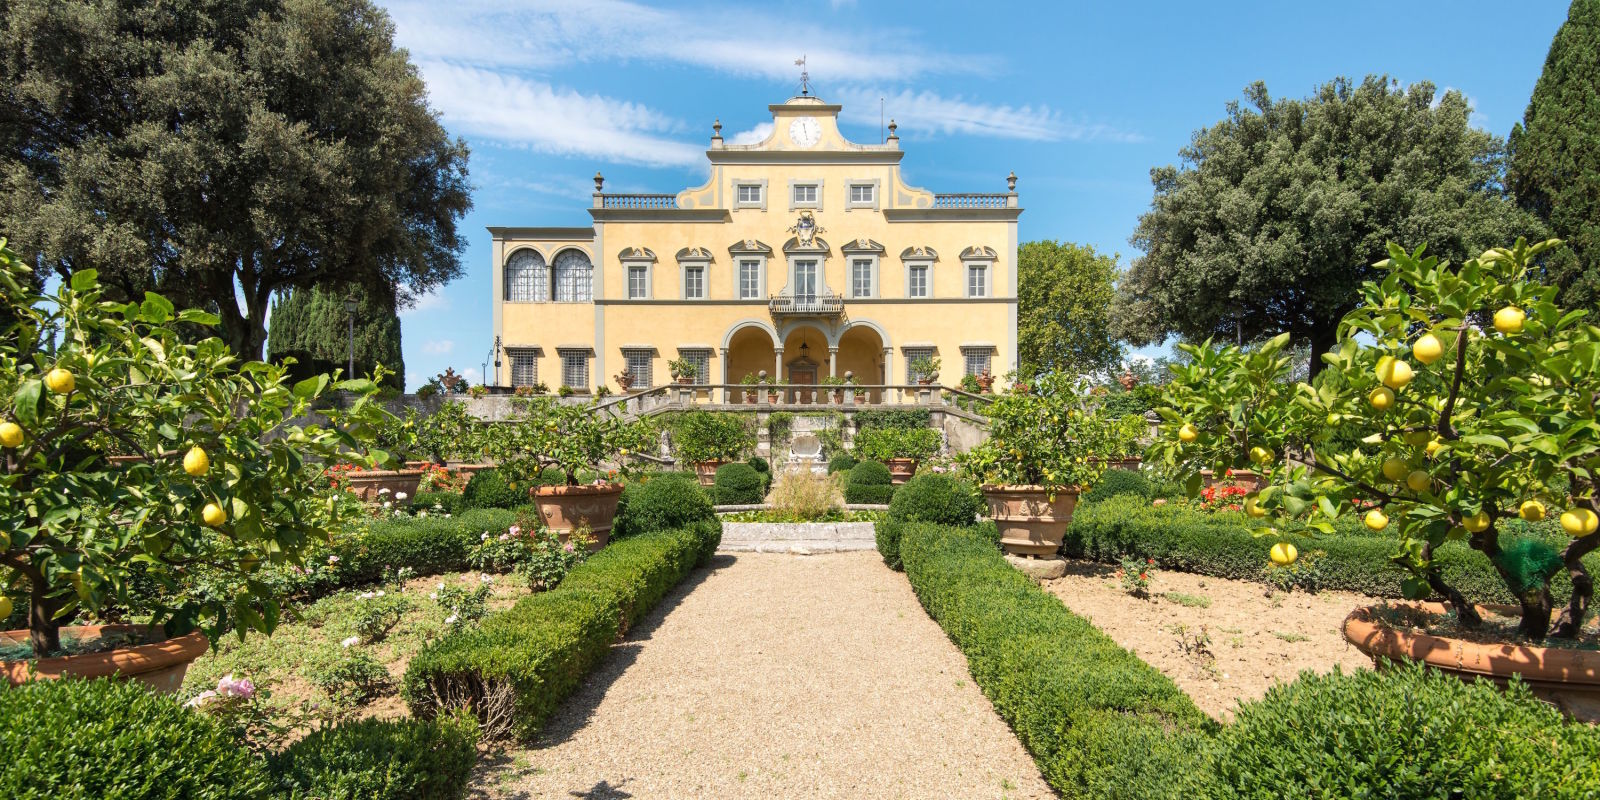 Italian villa where mona lisa was painted is for sale for Luxury italian real estate